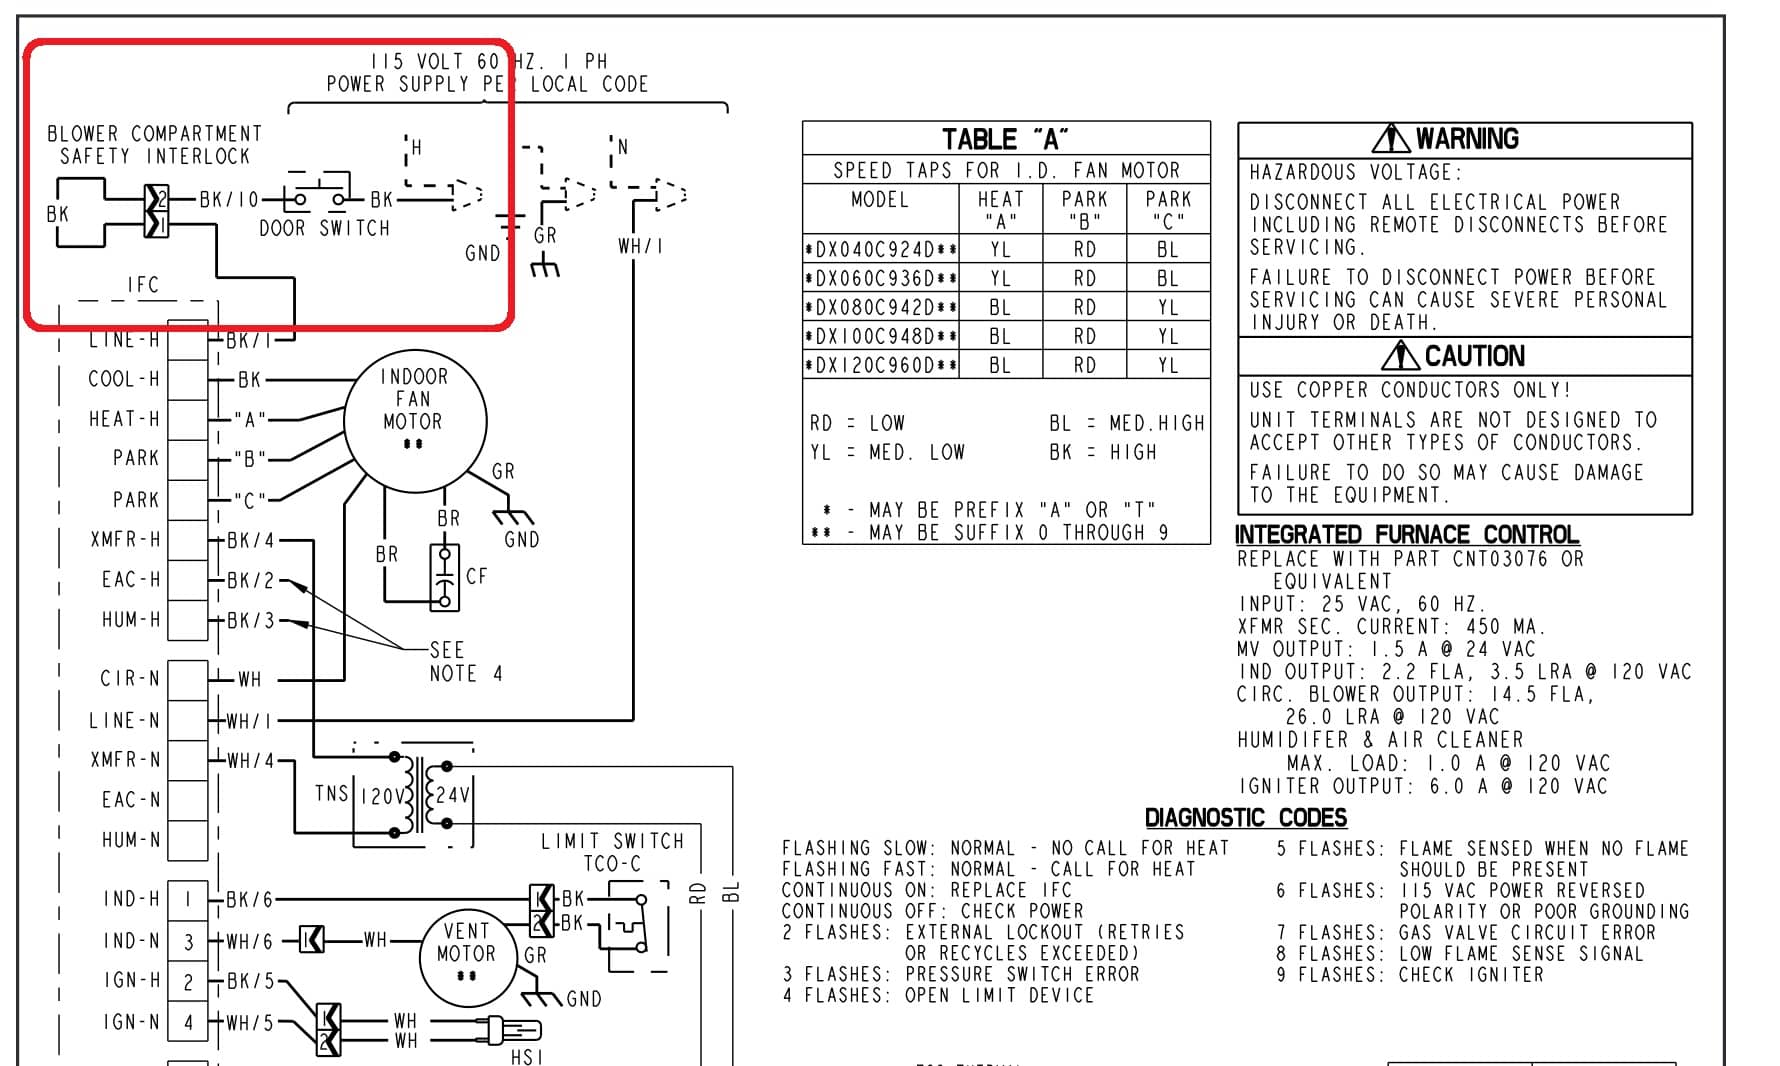 Trane_Furnace_Wiring_PARTIAL_023 trane xe90 repair manual 28 images icp furnace parts model trane xe 80 diagram at soozxer.org